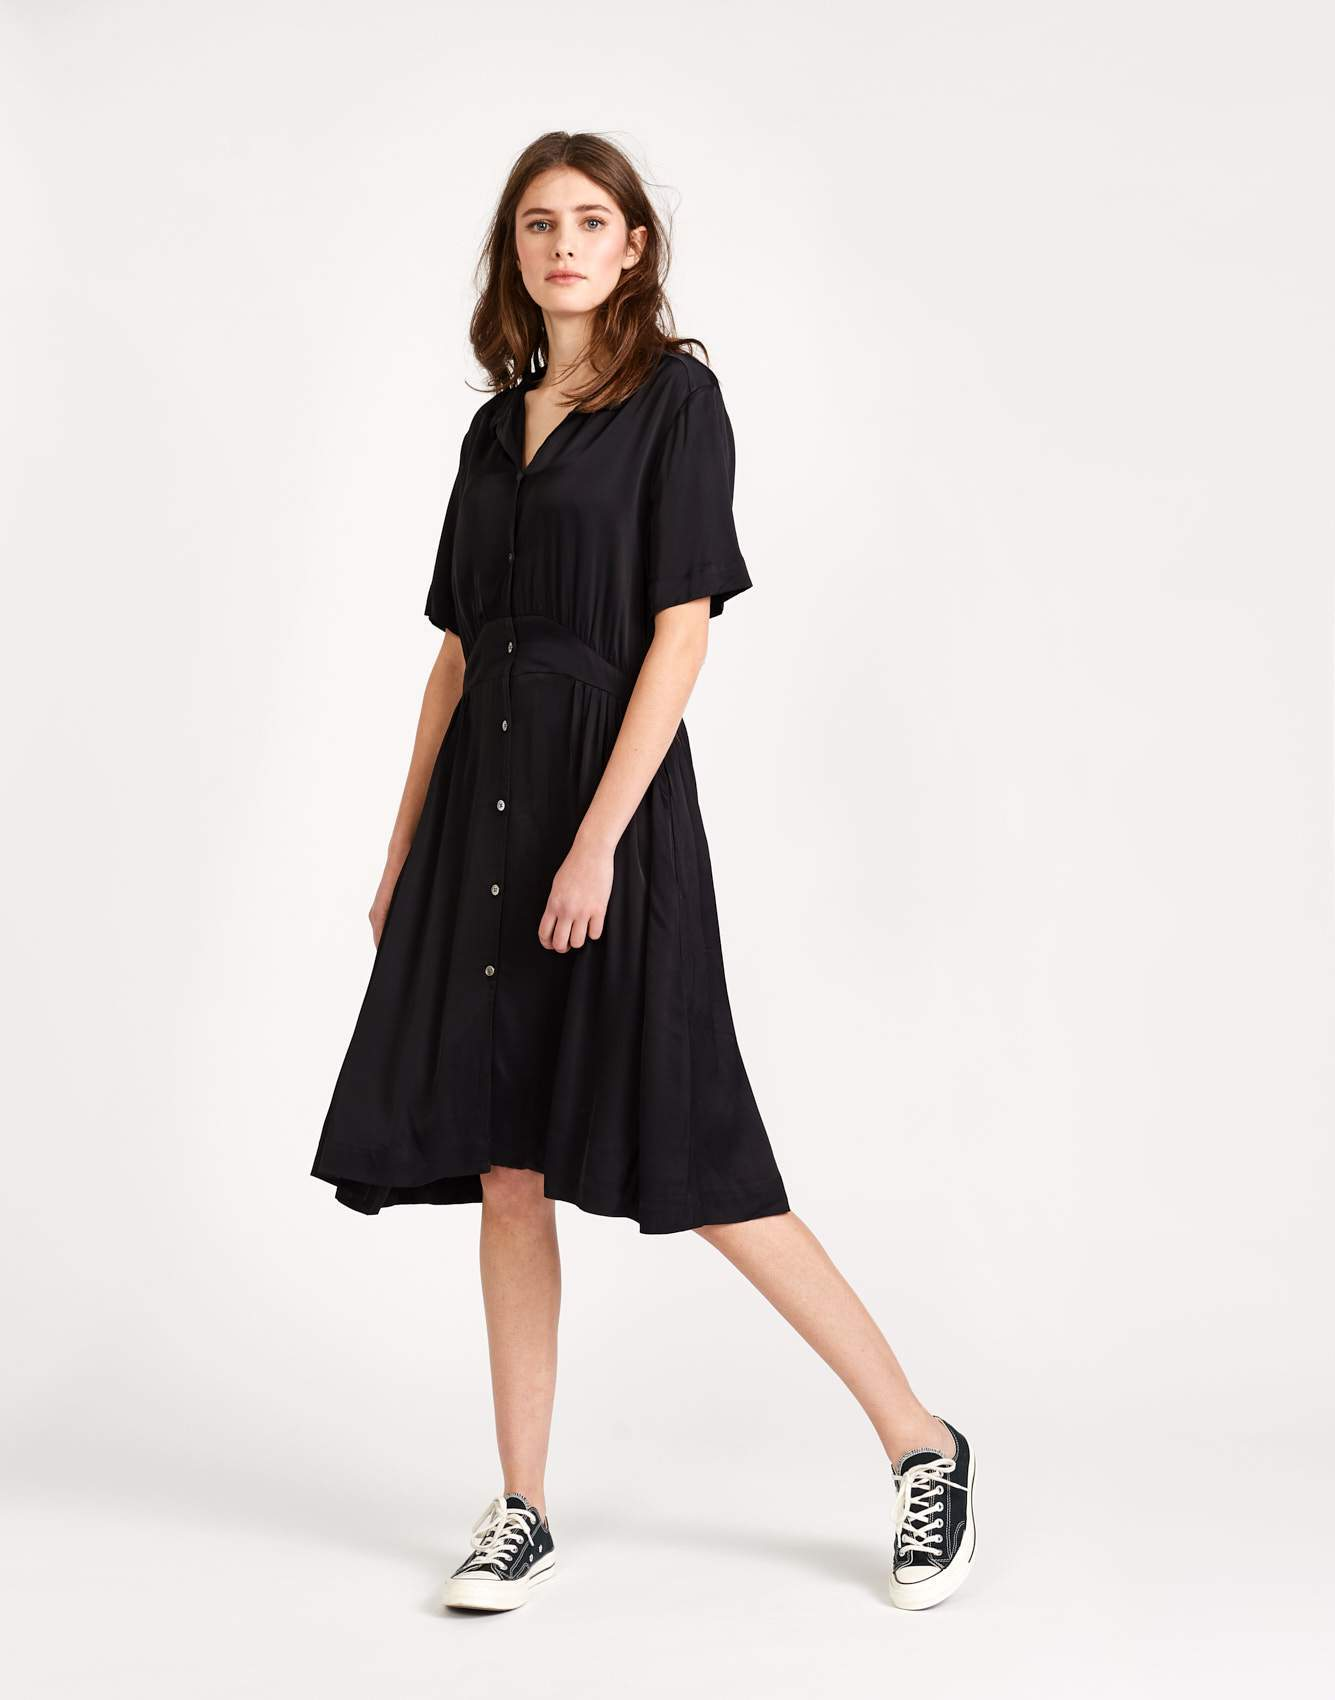 Bellerose black dress with shirt collar for women